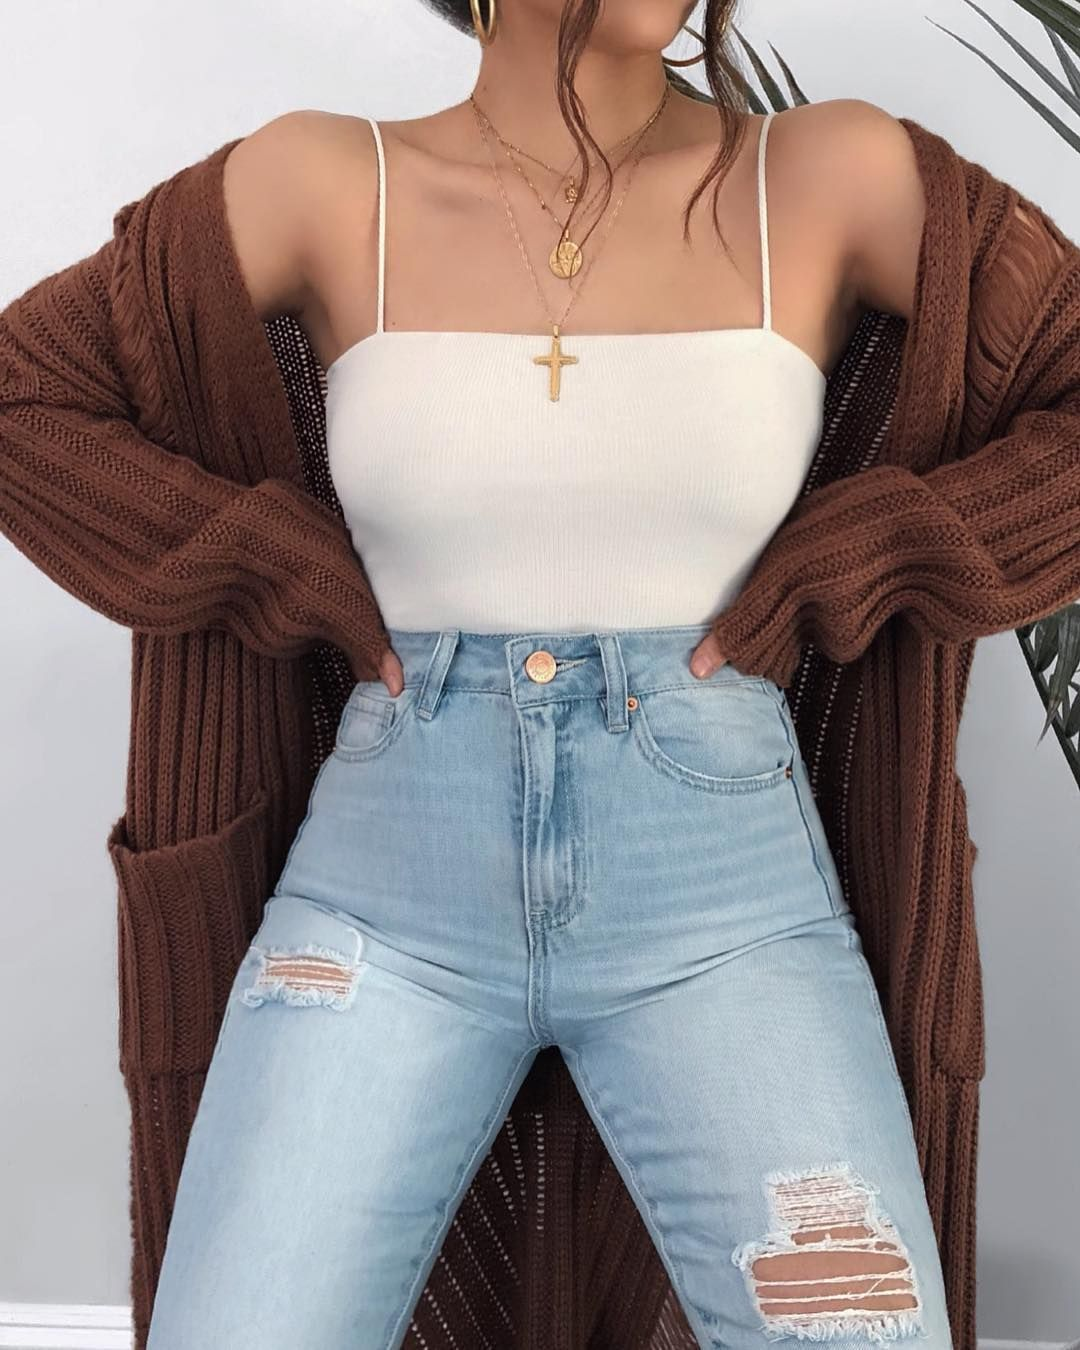 """Rubi Ortiz on Instagram """"Close up on @ymijeans jeans 🍂🍁🥐 These high waisted ones are my fav! Find them at ymijeans com & use my code """"RUBI30"""" for $ off ymijeans…"""" is part of Cute outfits - 23 9k Likes, 763 Comments  Rubi Ortiz (@rubilove) on Instagram """"Close up on @ymijeans jeans 🍂🍁🥐 These high waisted ones are my fav! Find them at ymijeans com & use…"""""""